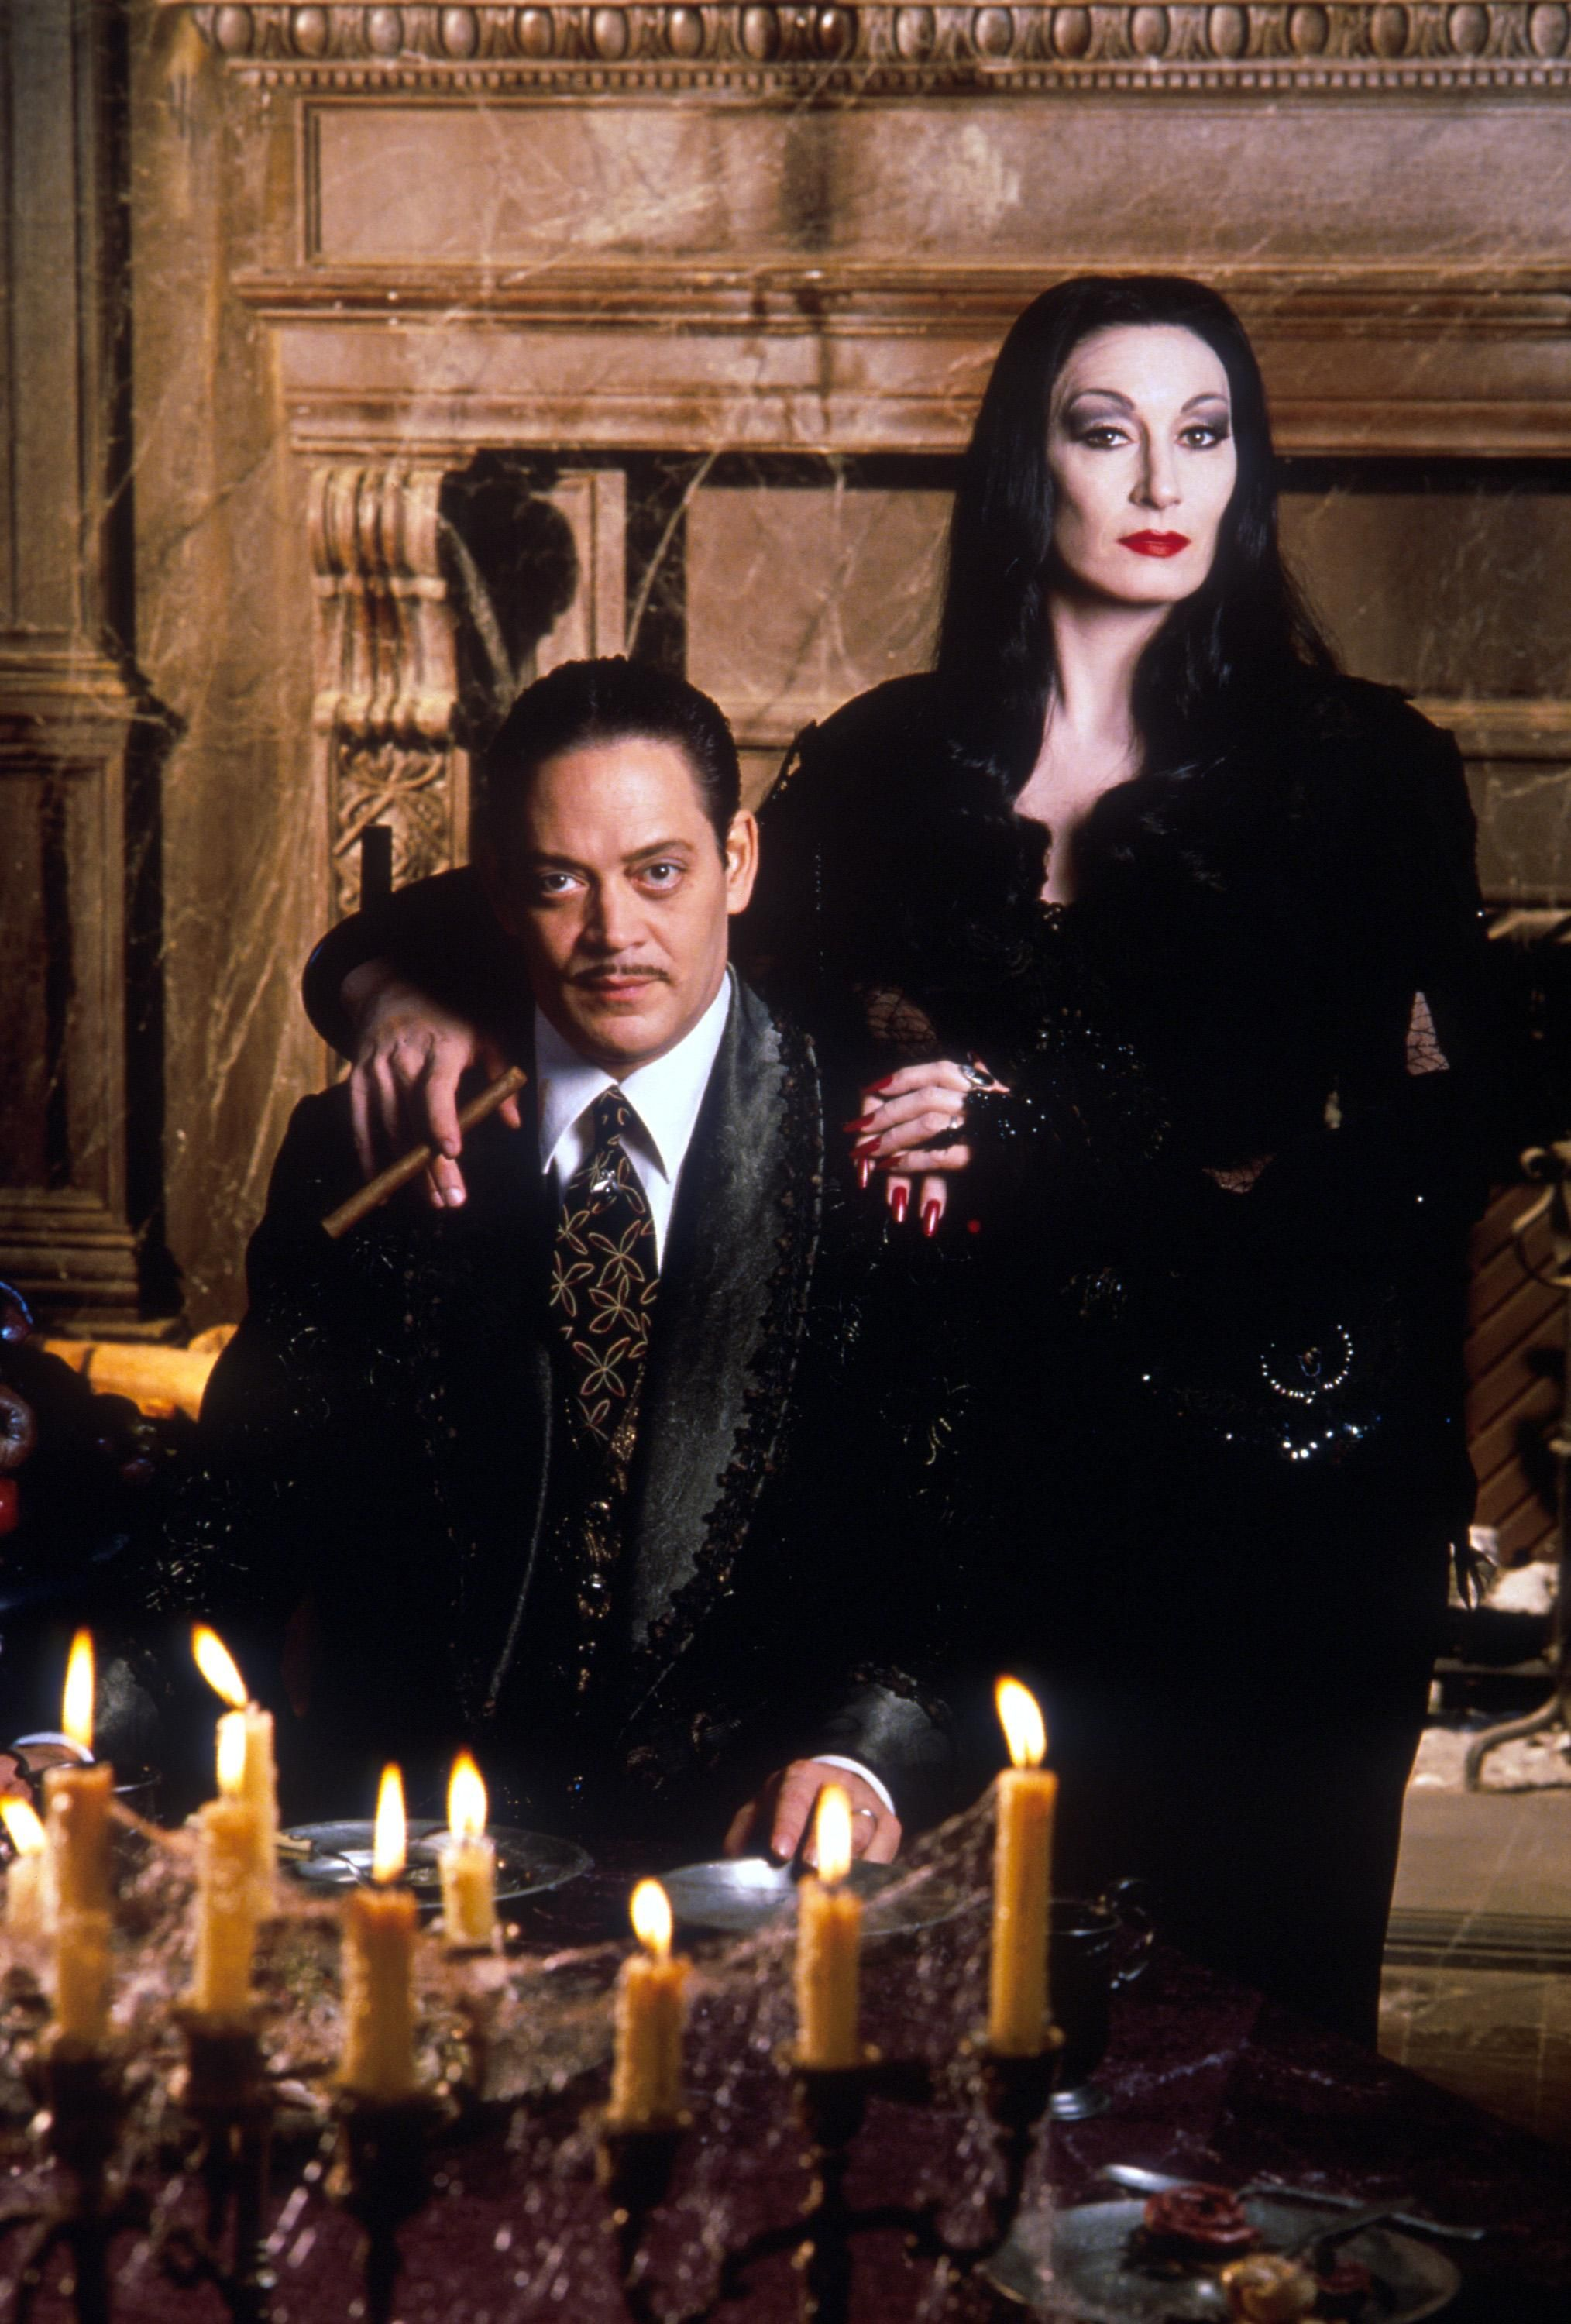 Still Of Raul Julia And Anjelica Huston In The Addams Family 1991 Http Www Movpins Com Dhqwmtaxmjcy The Addam Addams Family Gomez And Morticia Adams Family